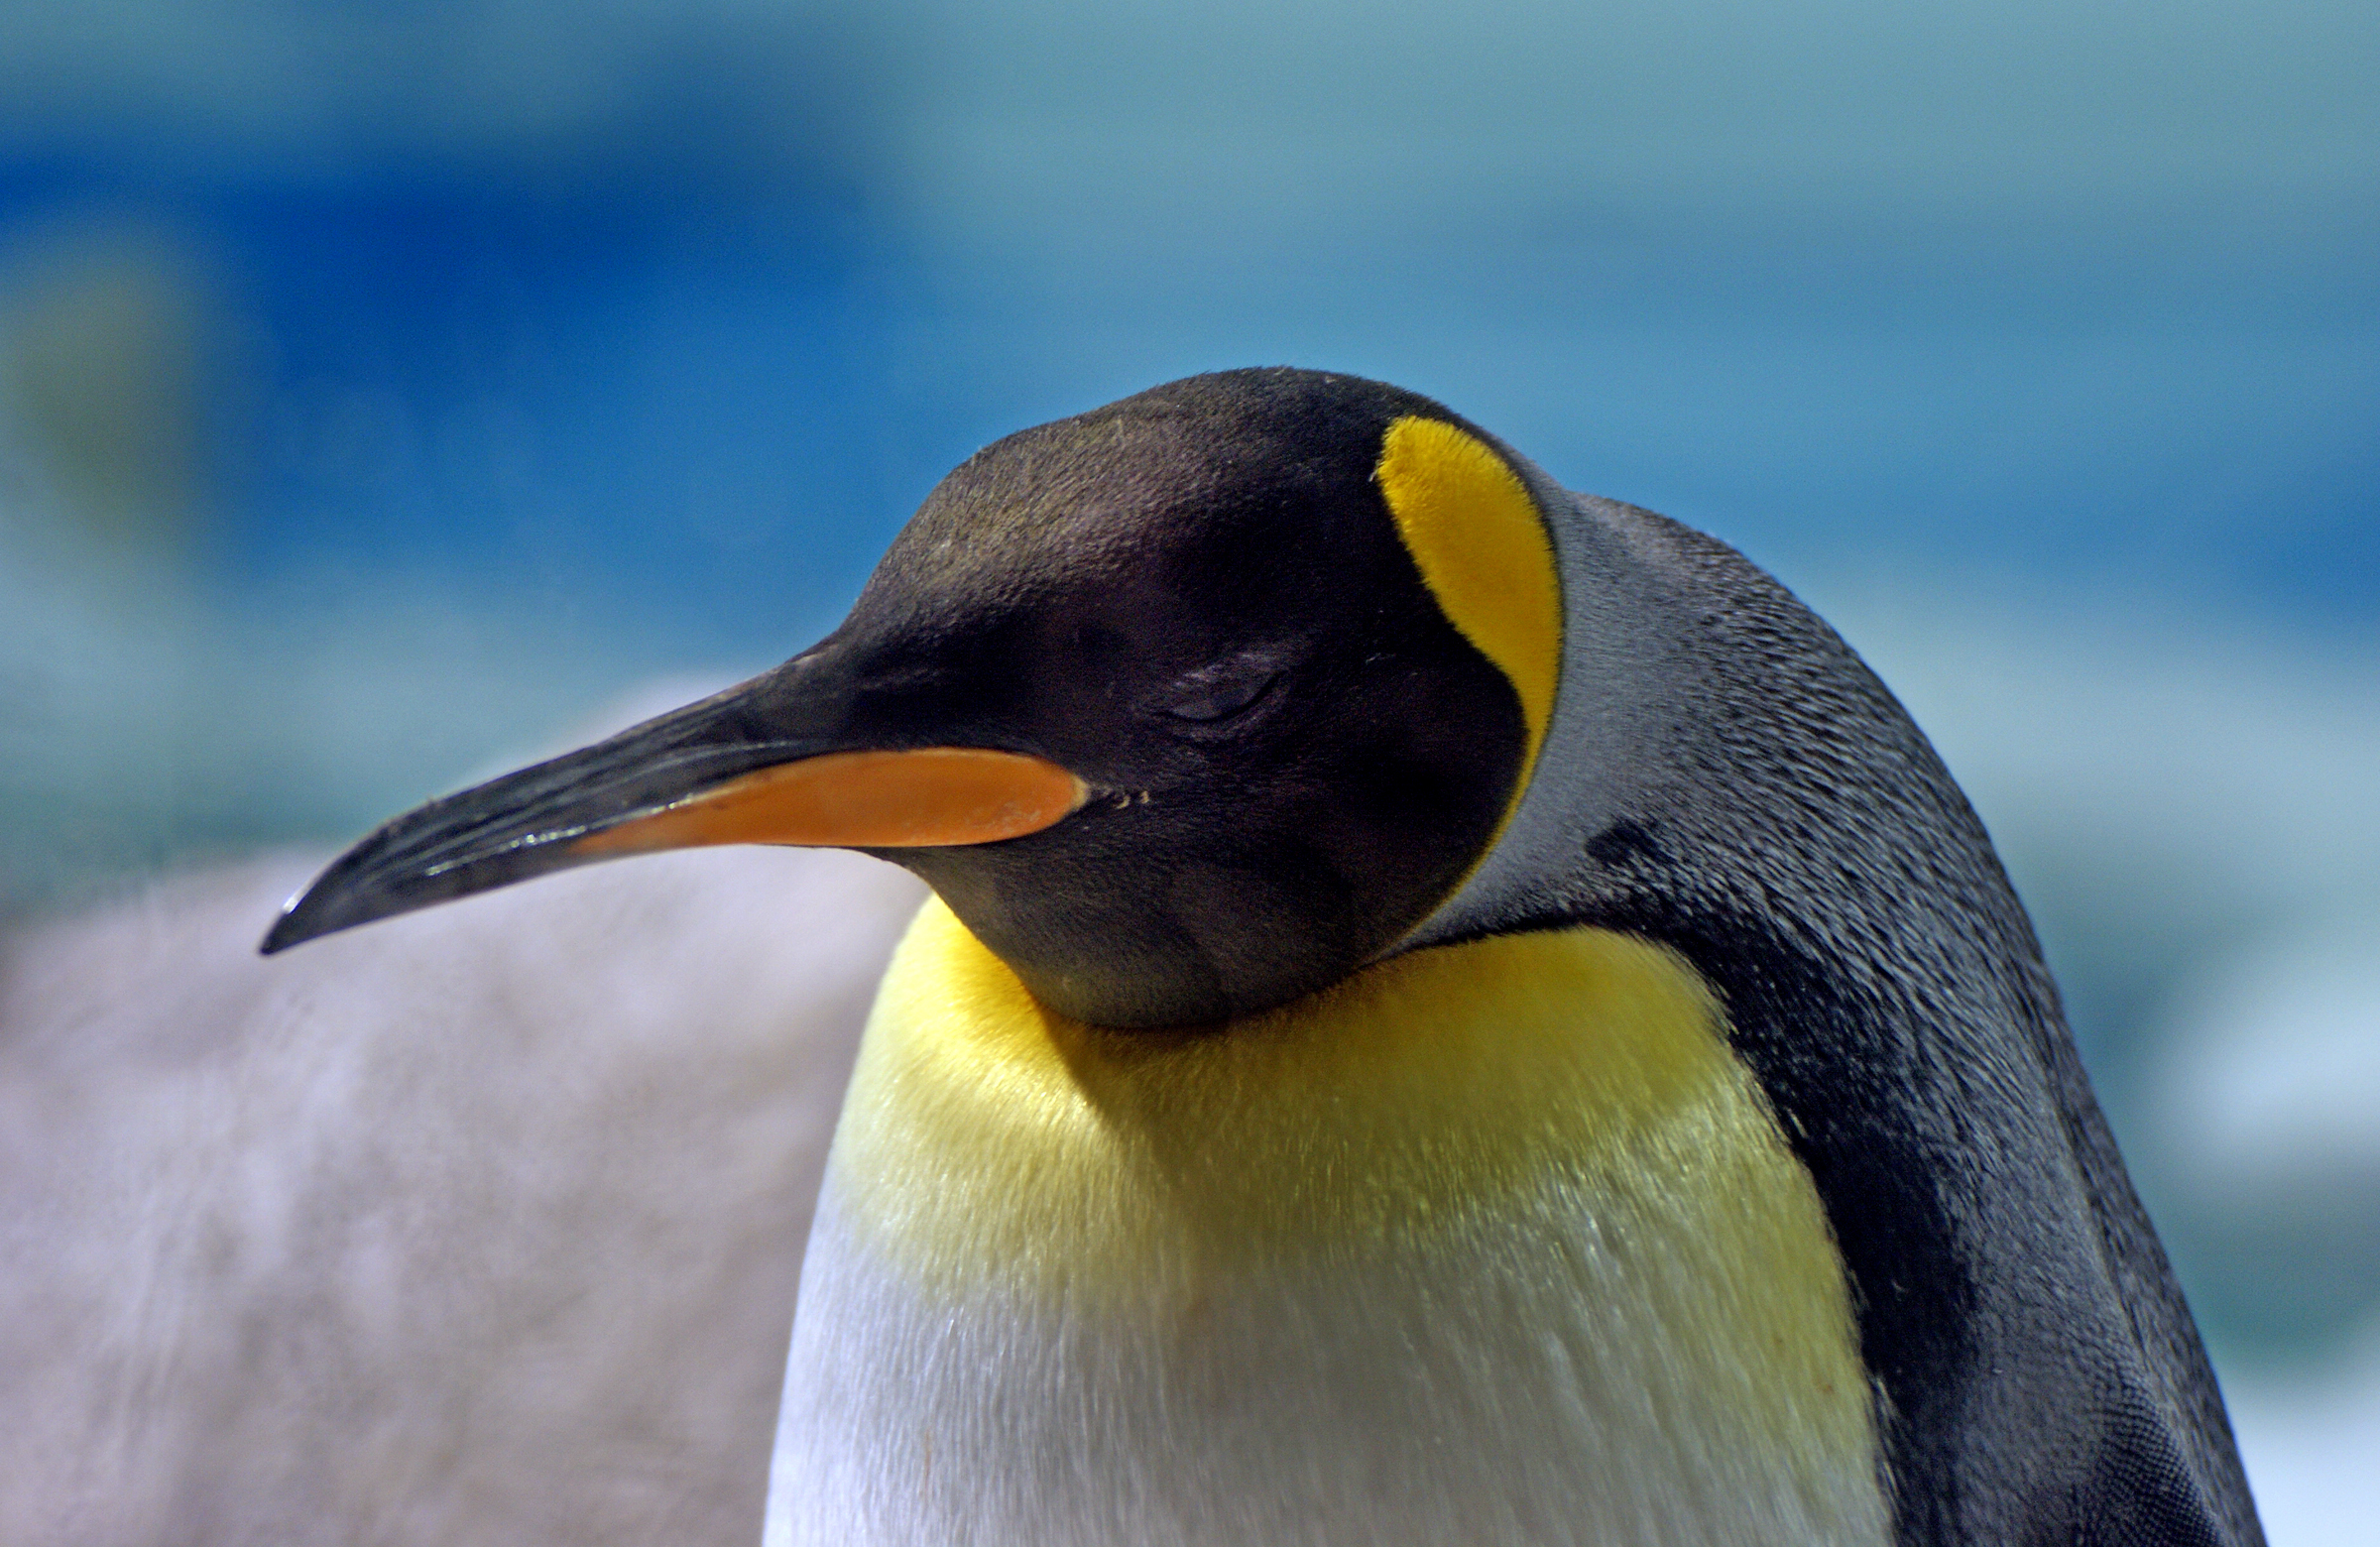 King Penguin. (12065911556).jpg King penguins are slightly smaller and lighter than their southern relative, the emperor penguin, making them